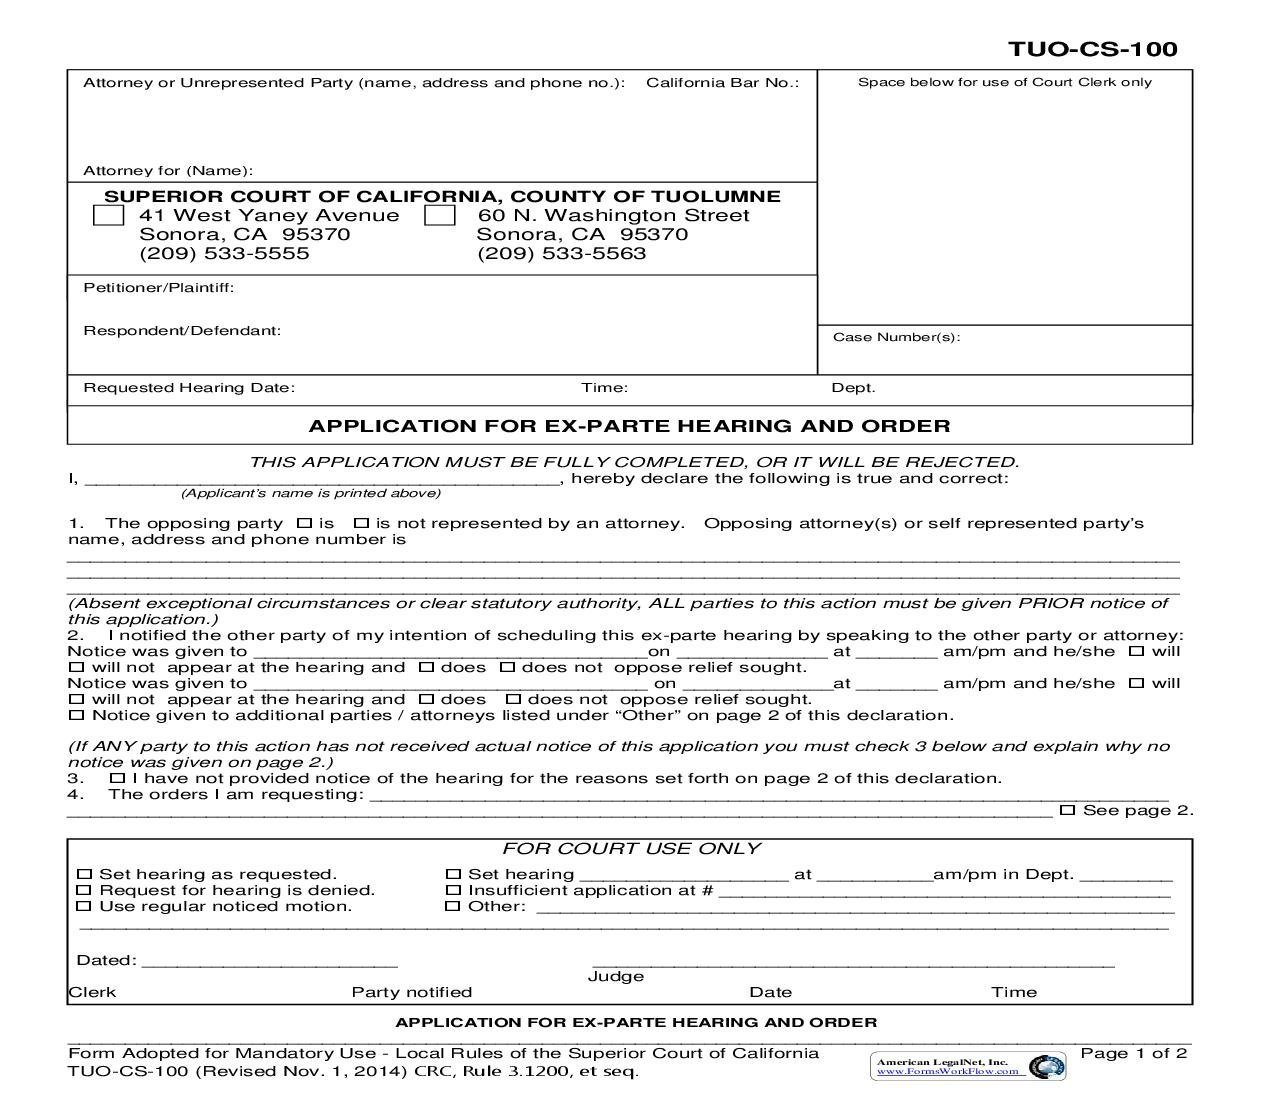 Application For Ex-Parte Hearing And Order {TUO-CS-100} | Pdf Fpdf Doc Docx | California